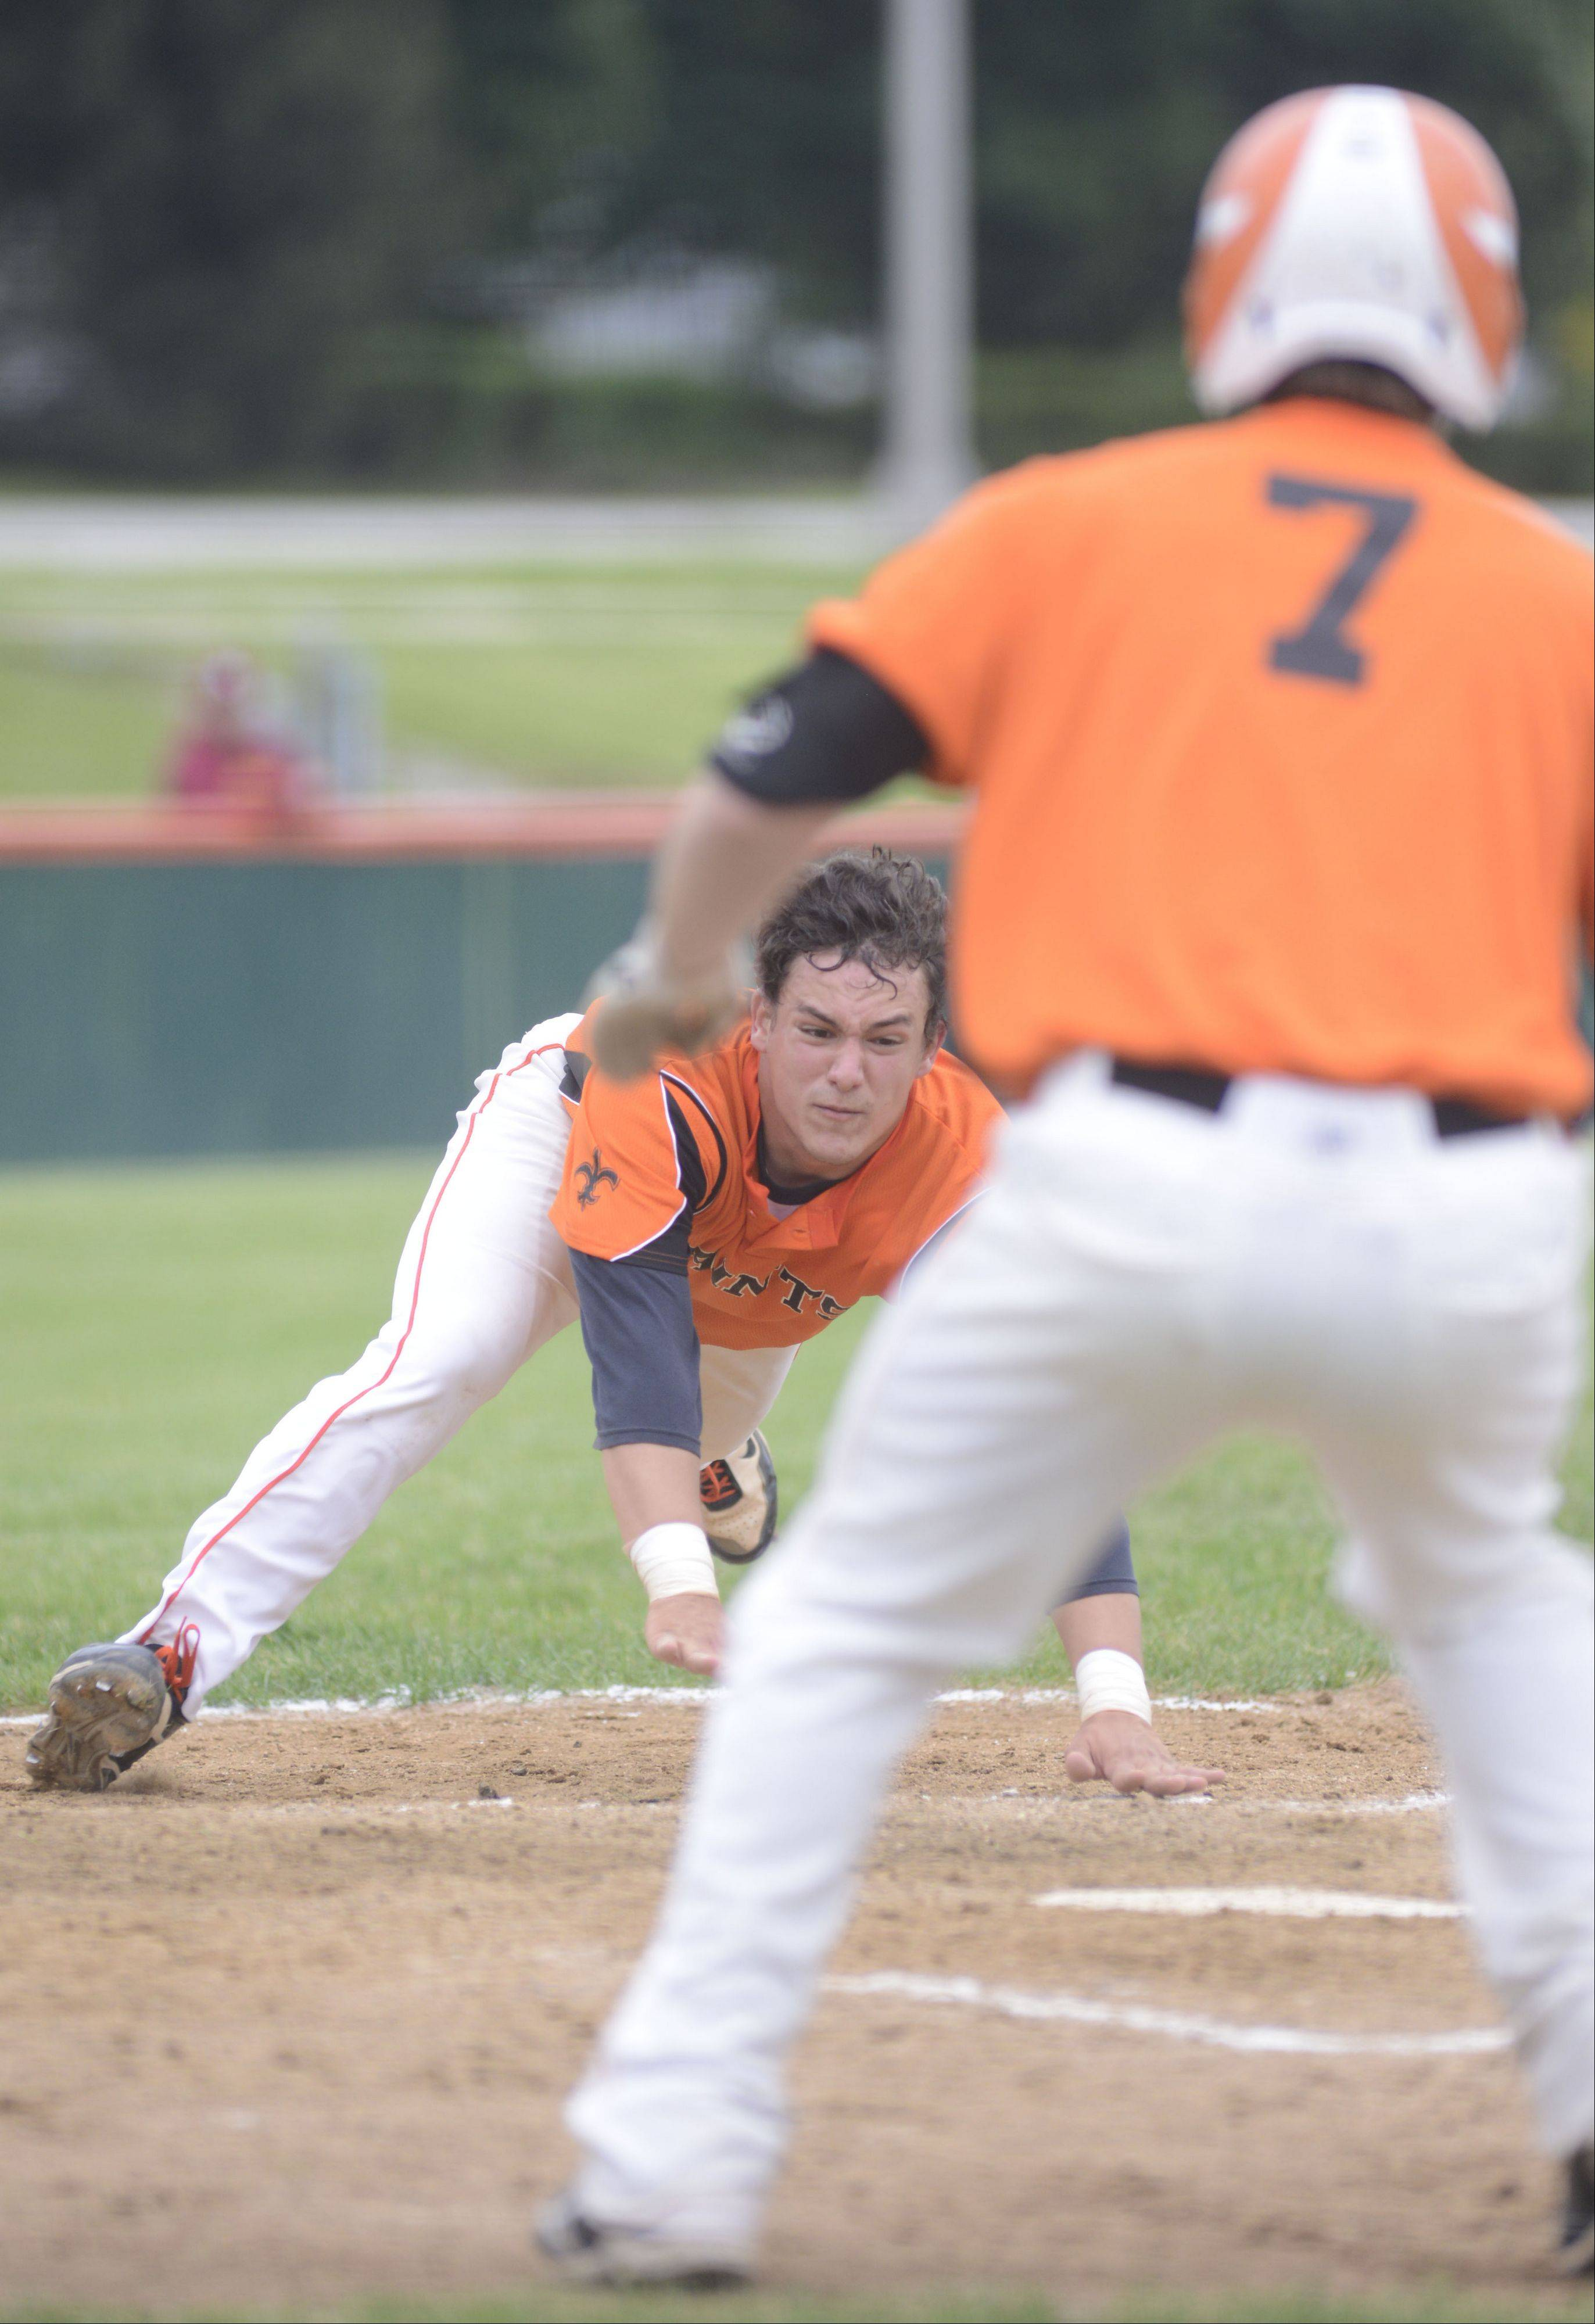 St. Charles East's Anthony Sciarrino dives headfirst toward home plate in front of teammate Nick Huskisson to score and break the tie in the fifth inning of the Class 4A sectional championship vs. Wheaton North on Saturday, June 1.